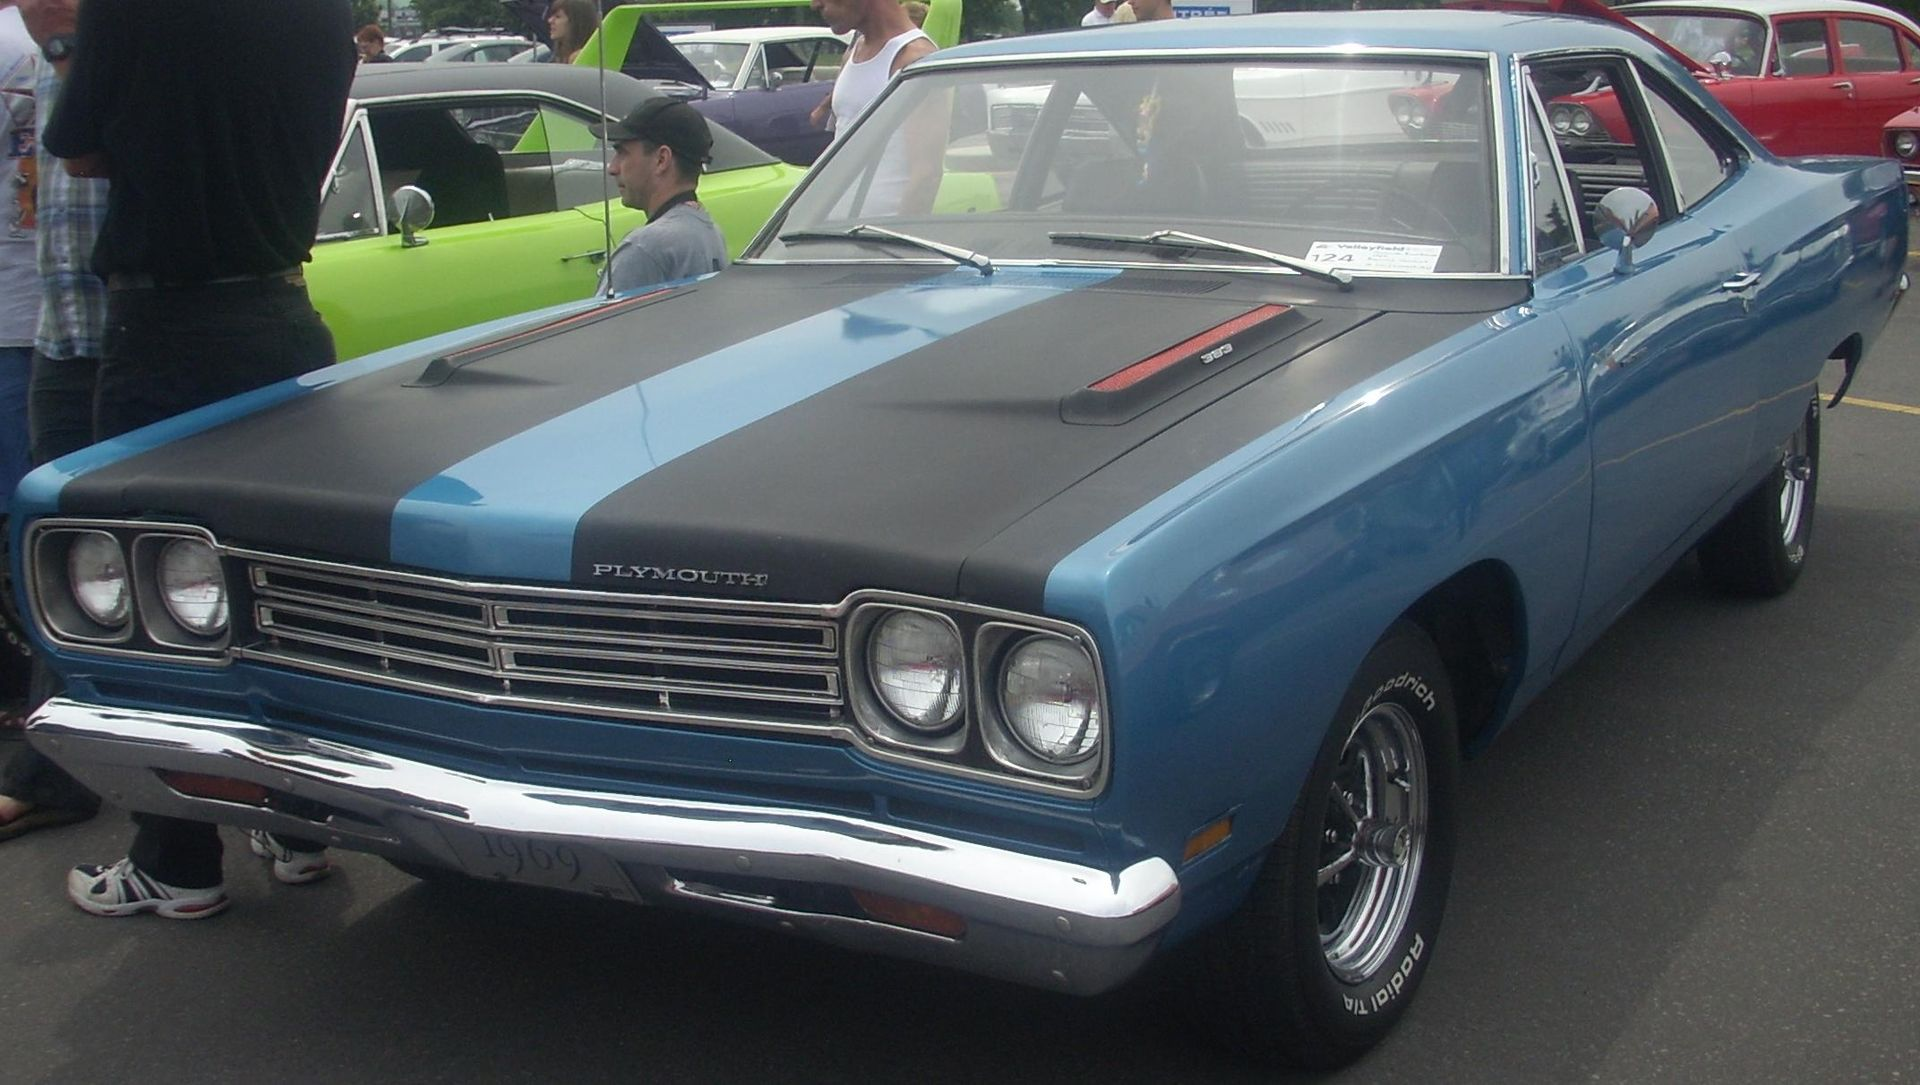 Px Plymouth Road Runner Rassemblement Mopar Valleyfield on Old Muscle Cars 1960s